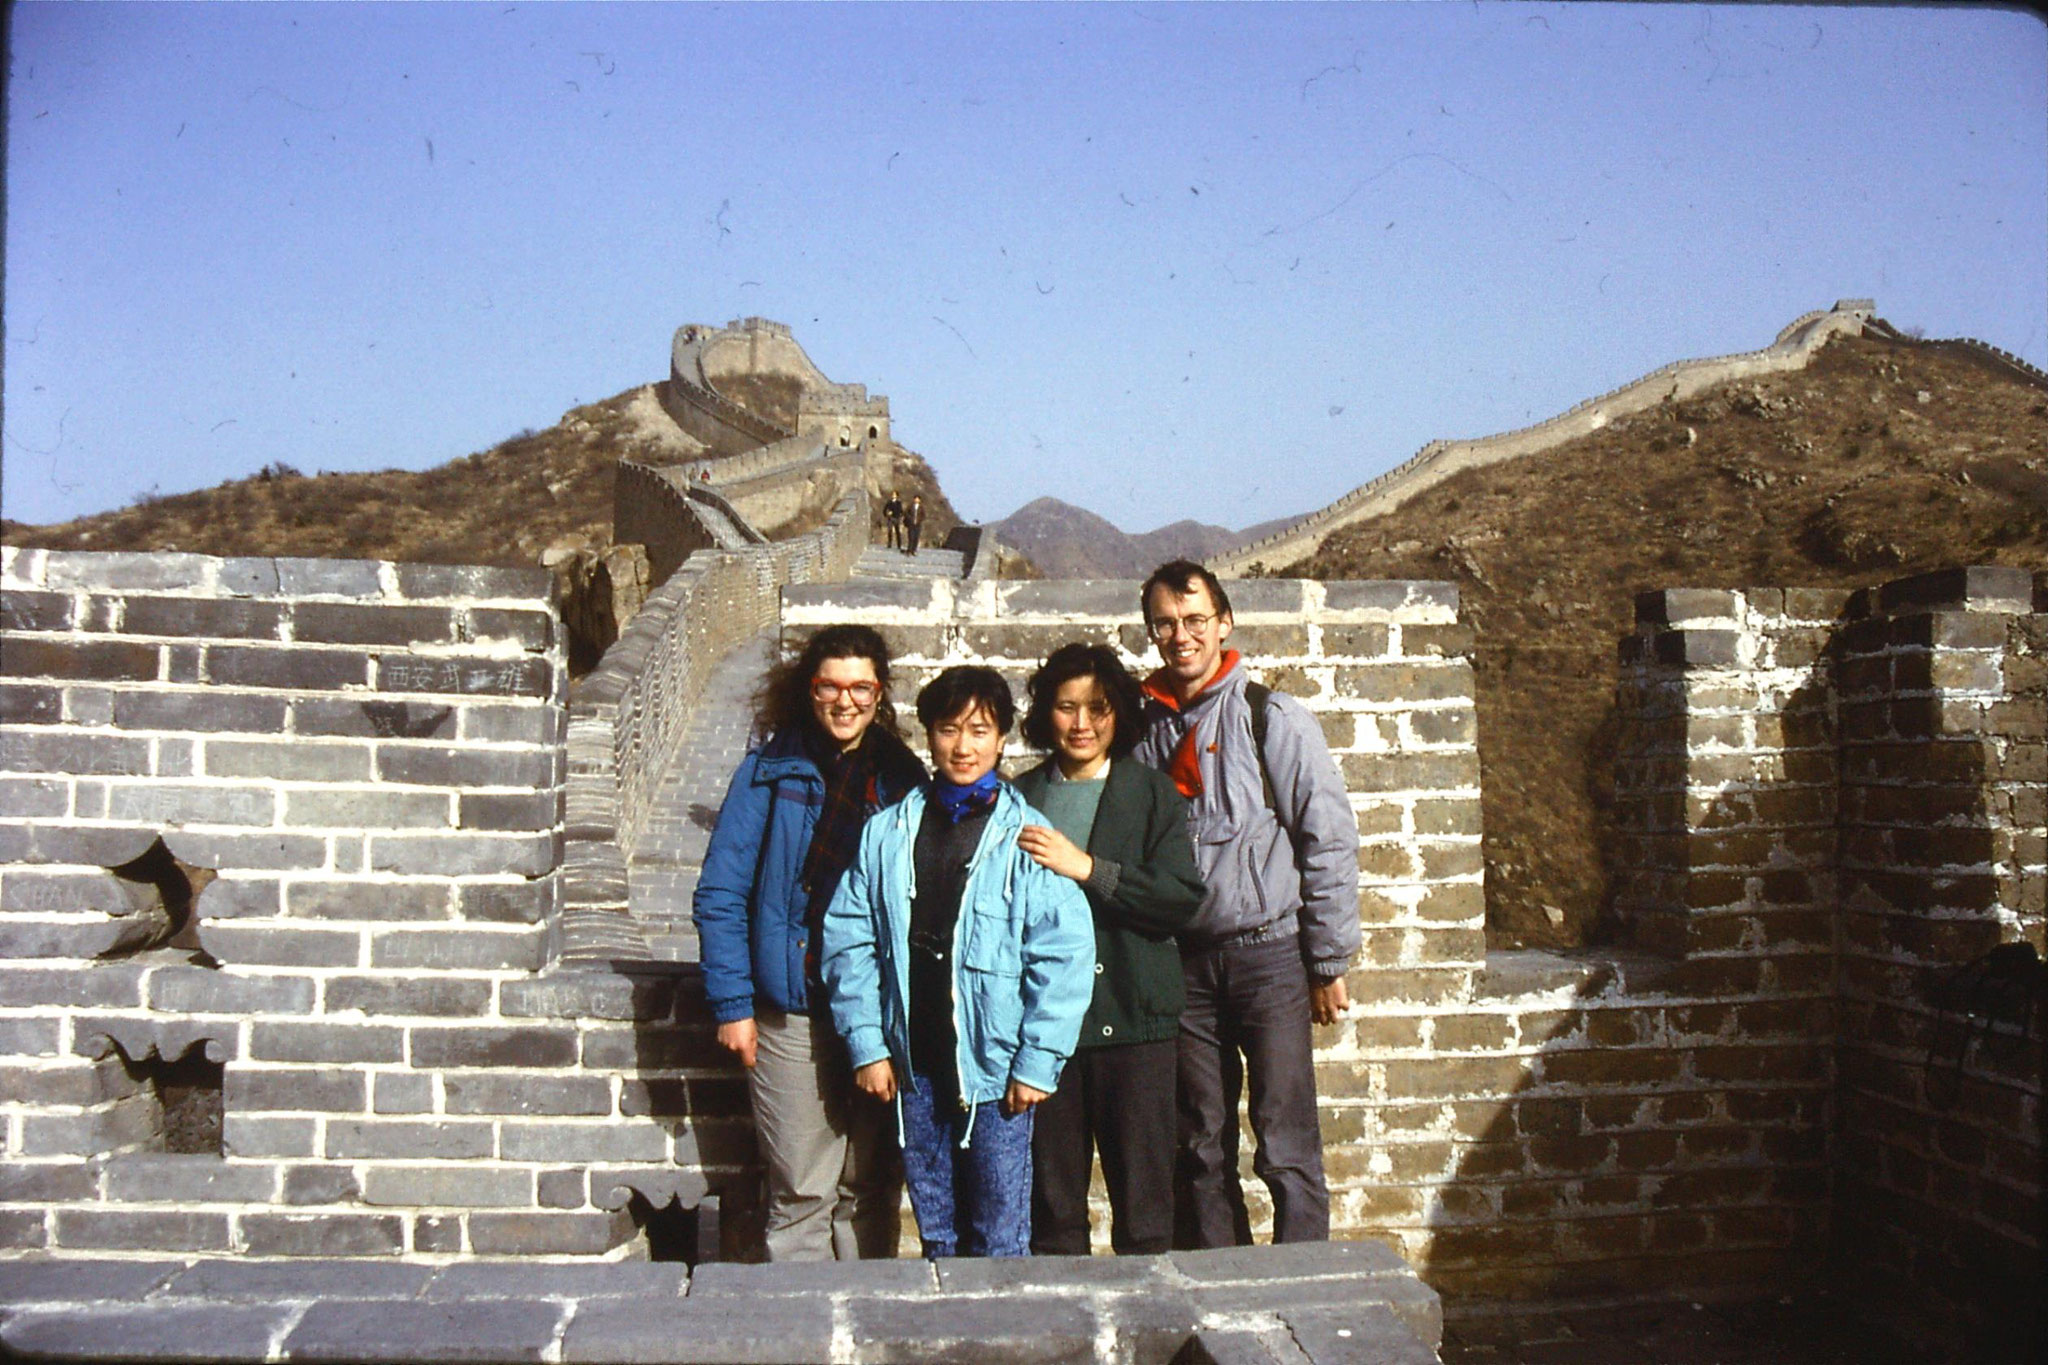 12/11/1988: 6: Great Wall at Badaling, R & E, Cao Chung Yan & Li Hong